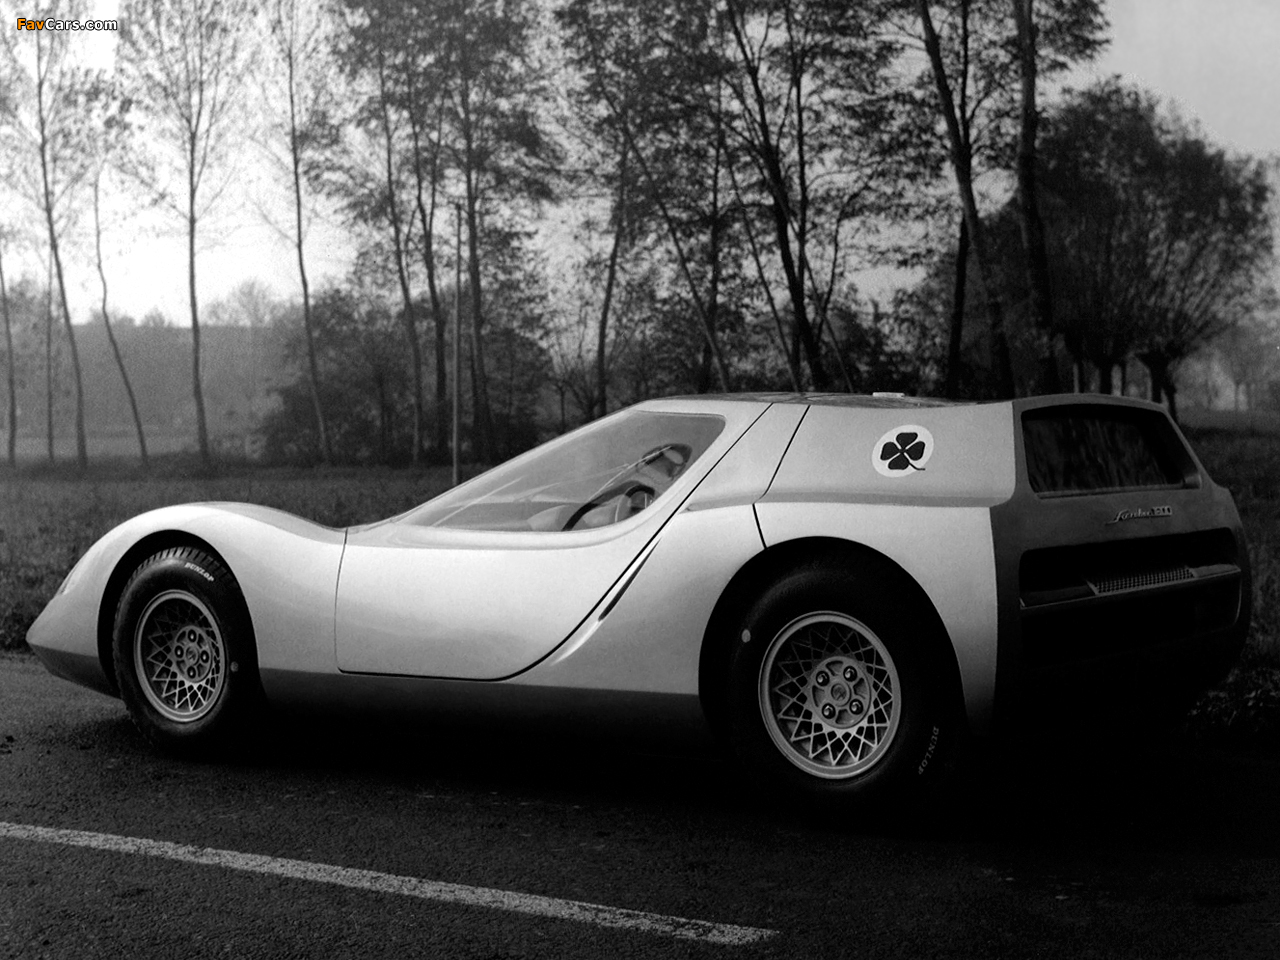 Alfa romeo scarabeo photo - 1